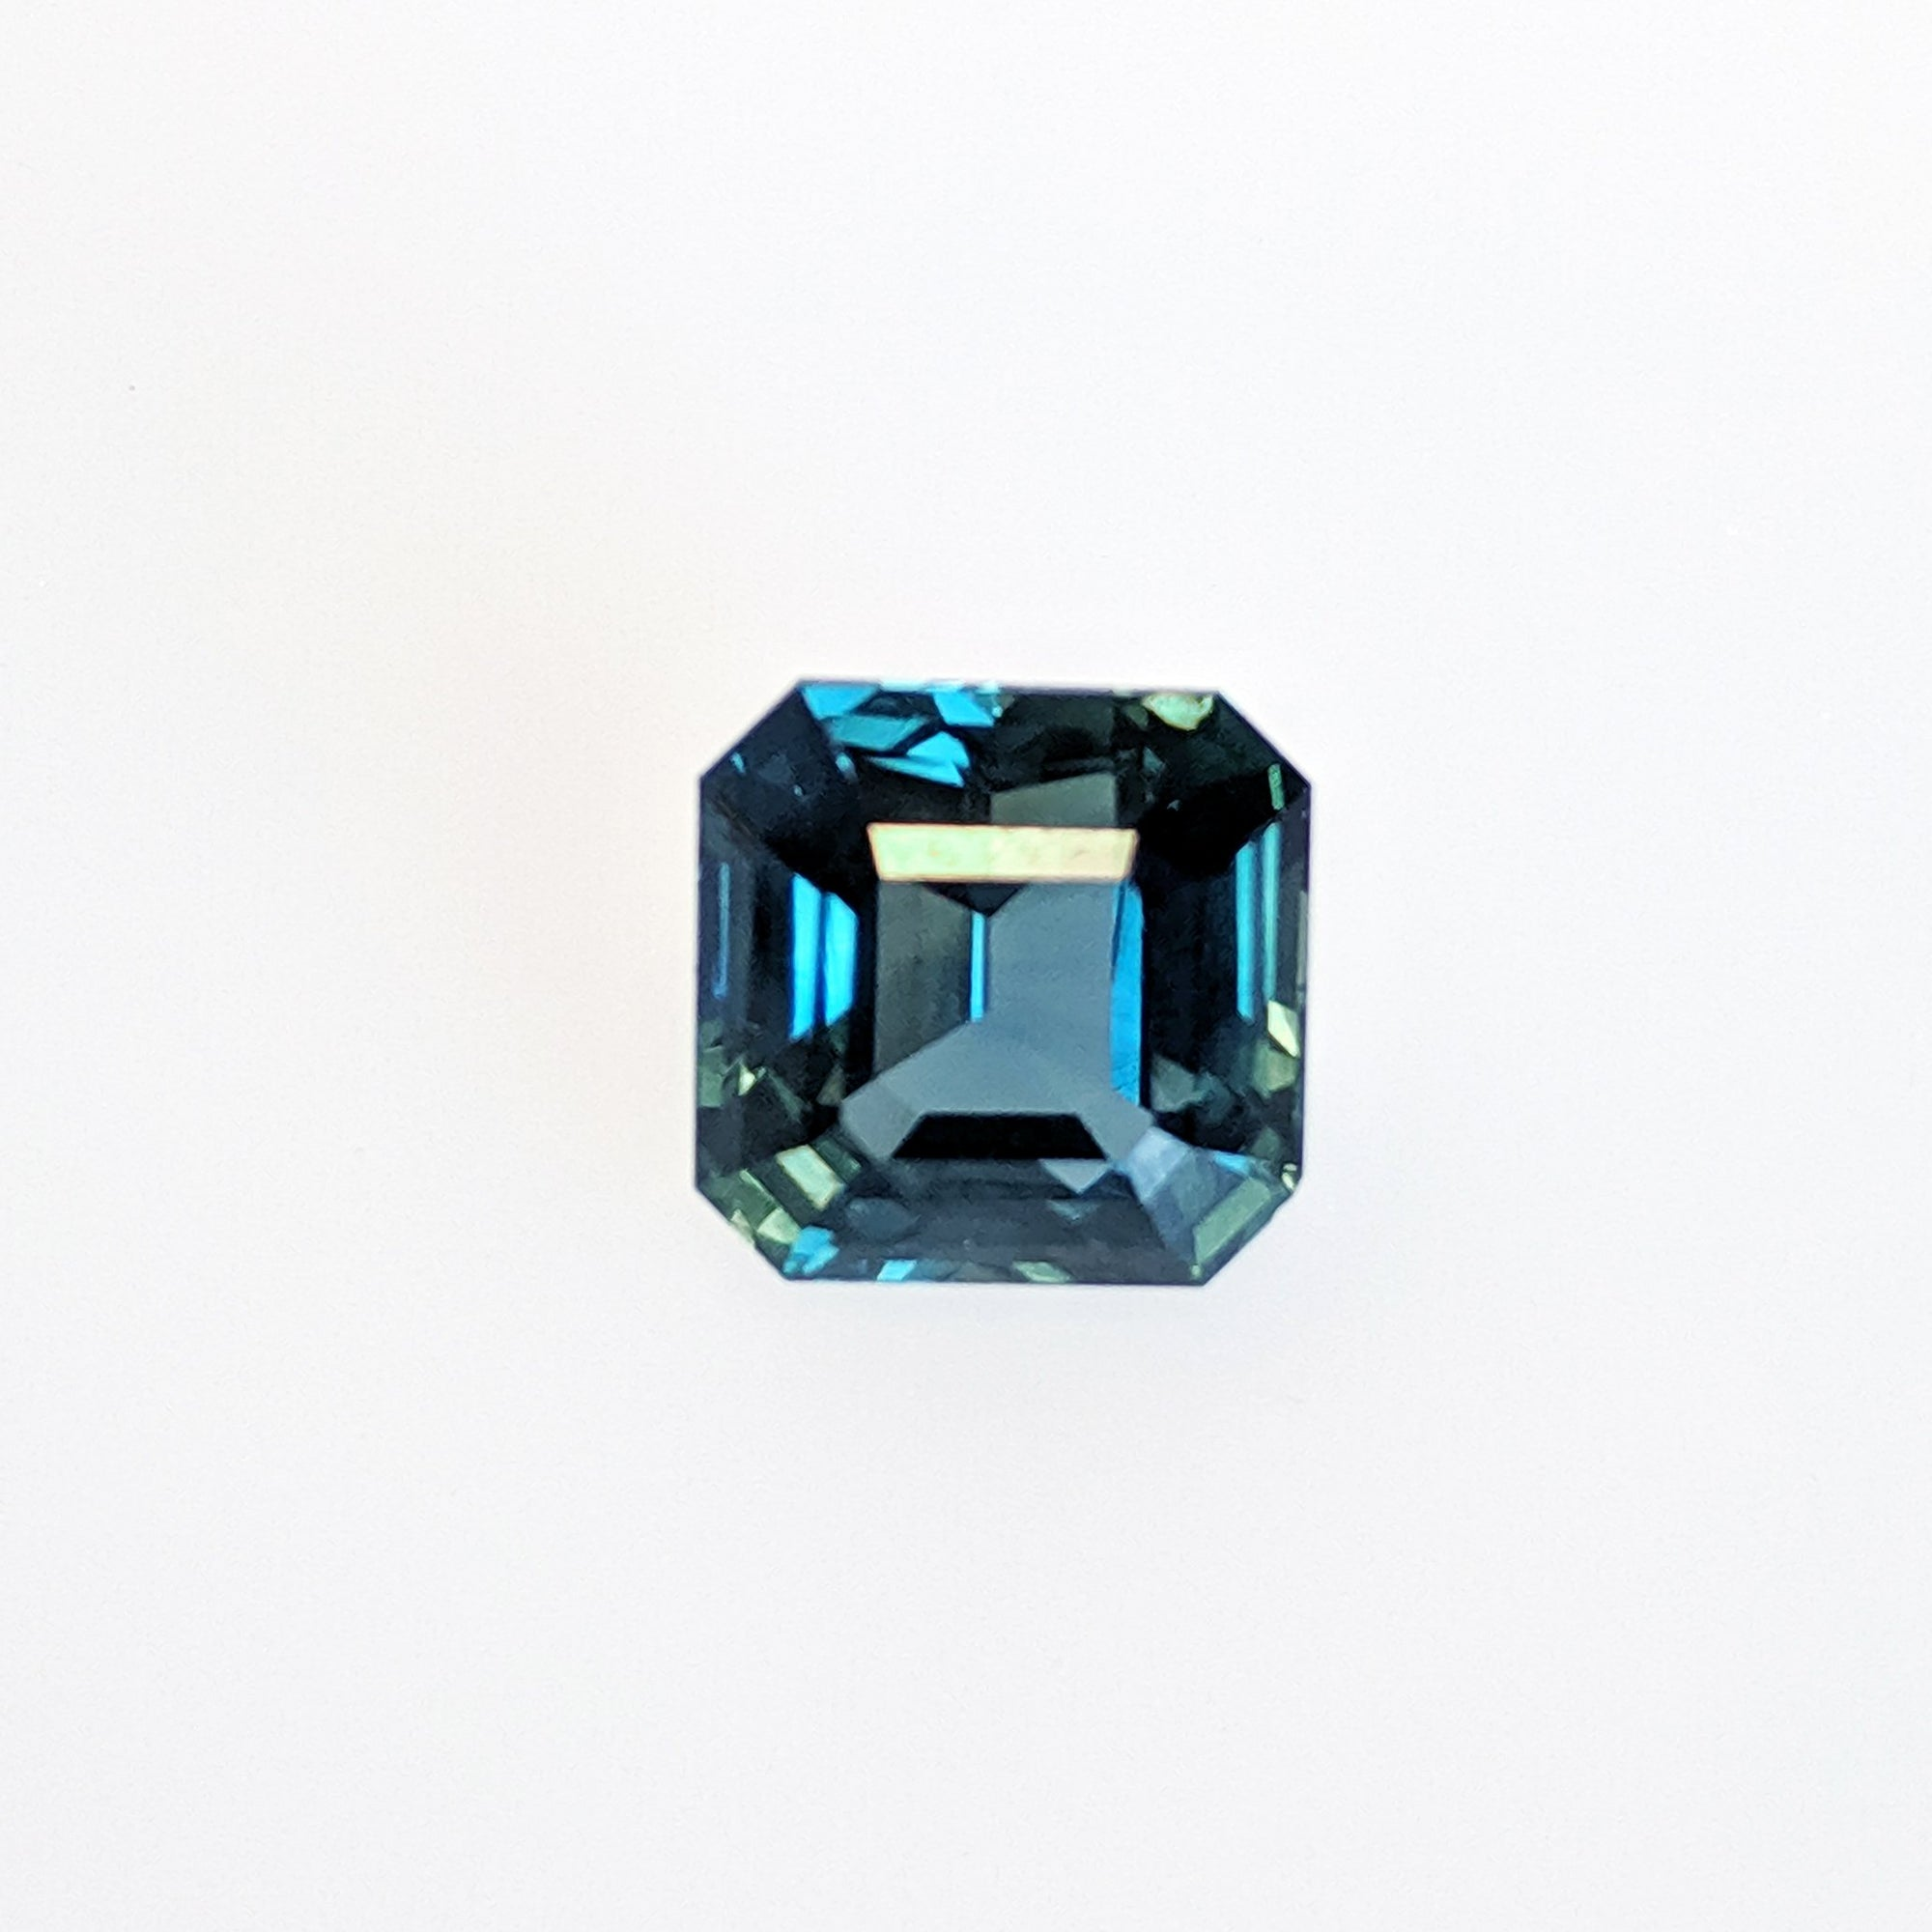 4.47 Carat Color Change Green to Blue Sapphire